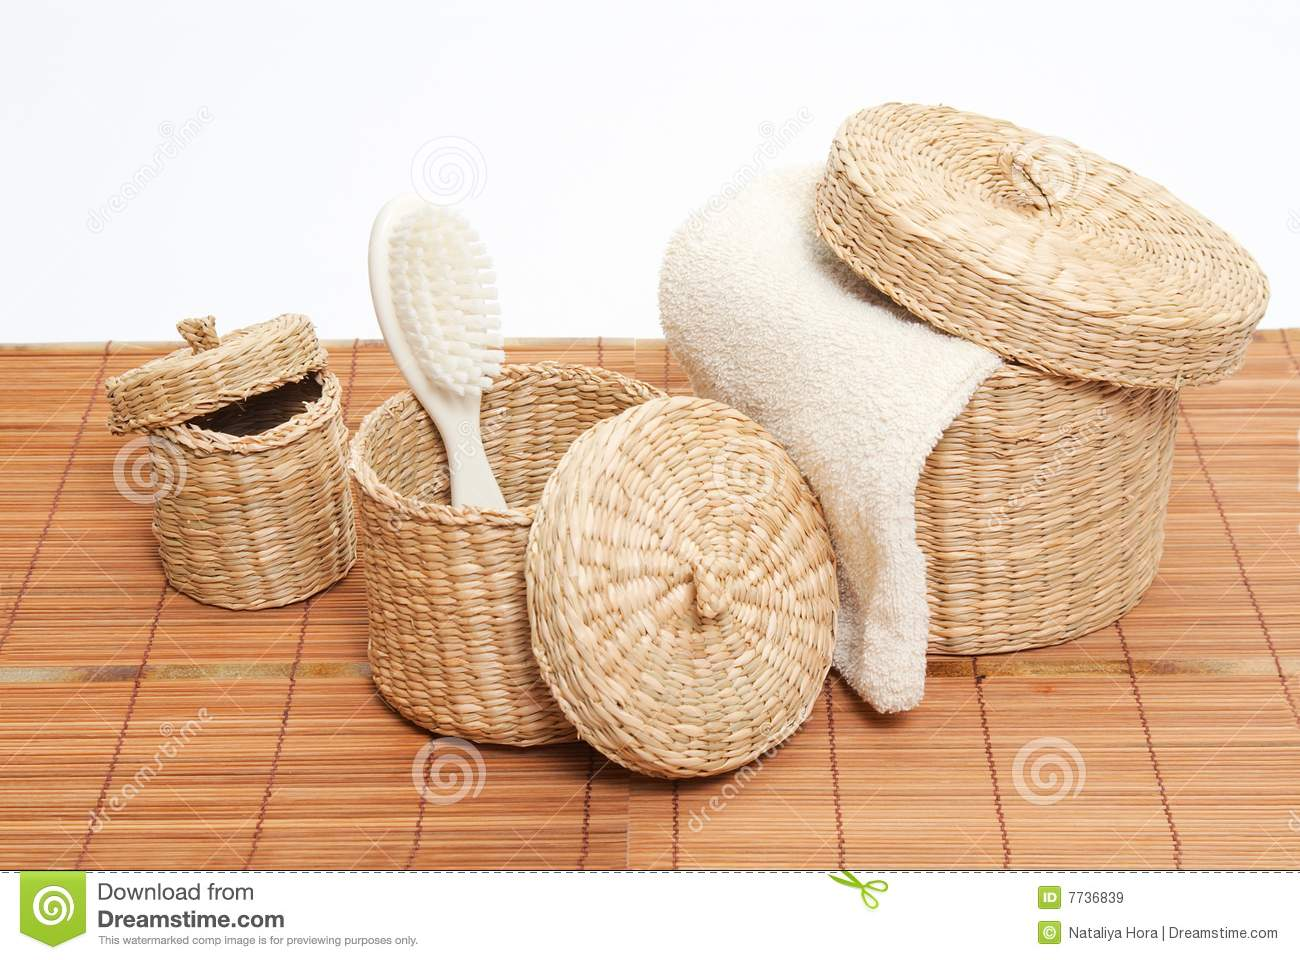 Baskets with bath accessories royalty free stock images for Bathroom accessories baskets